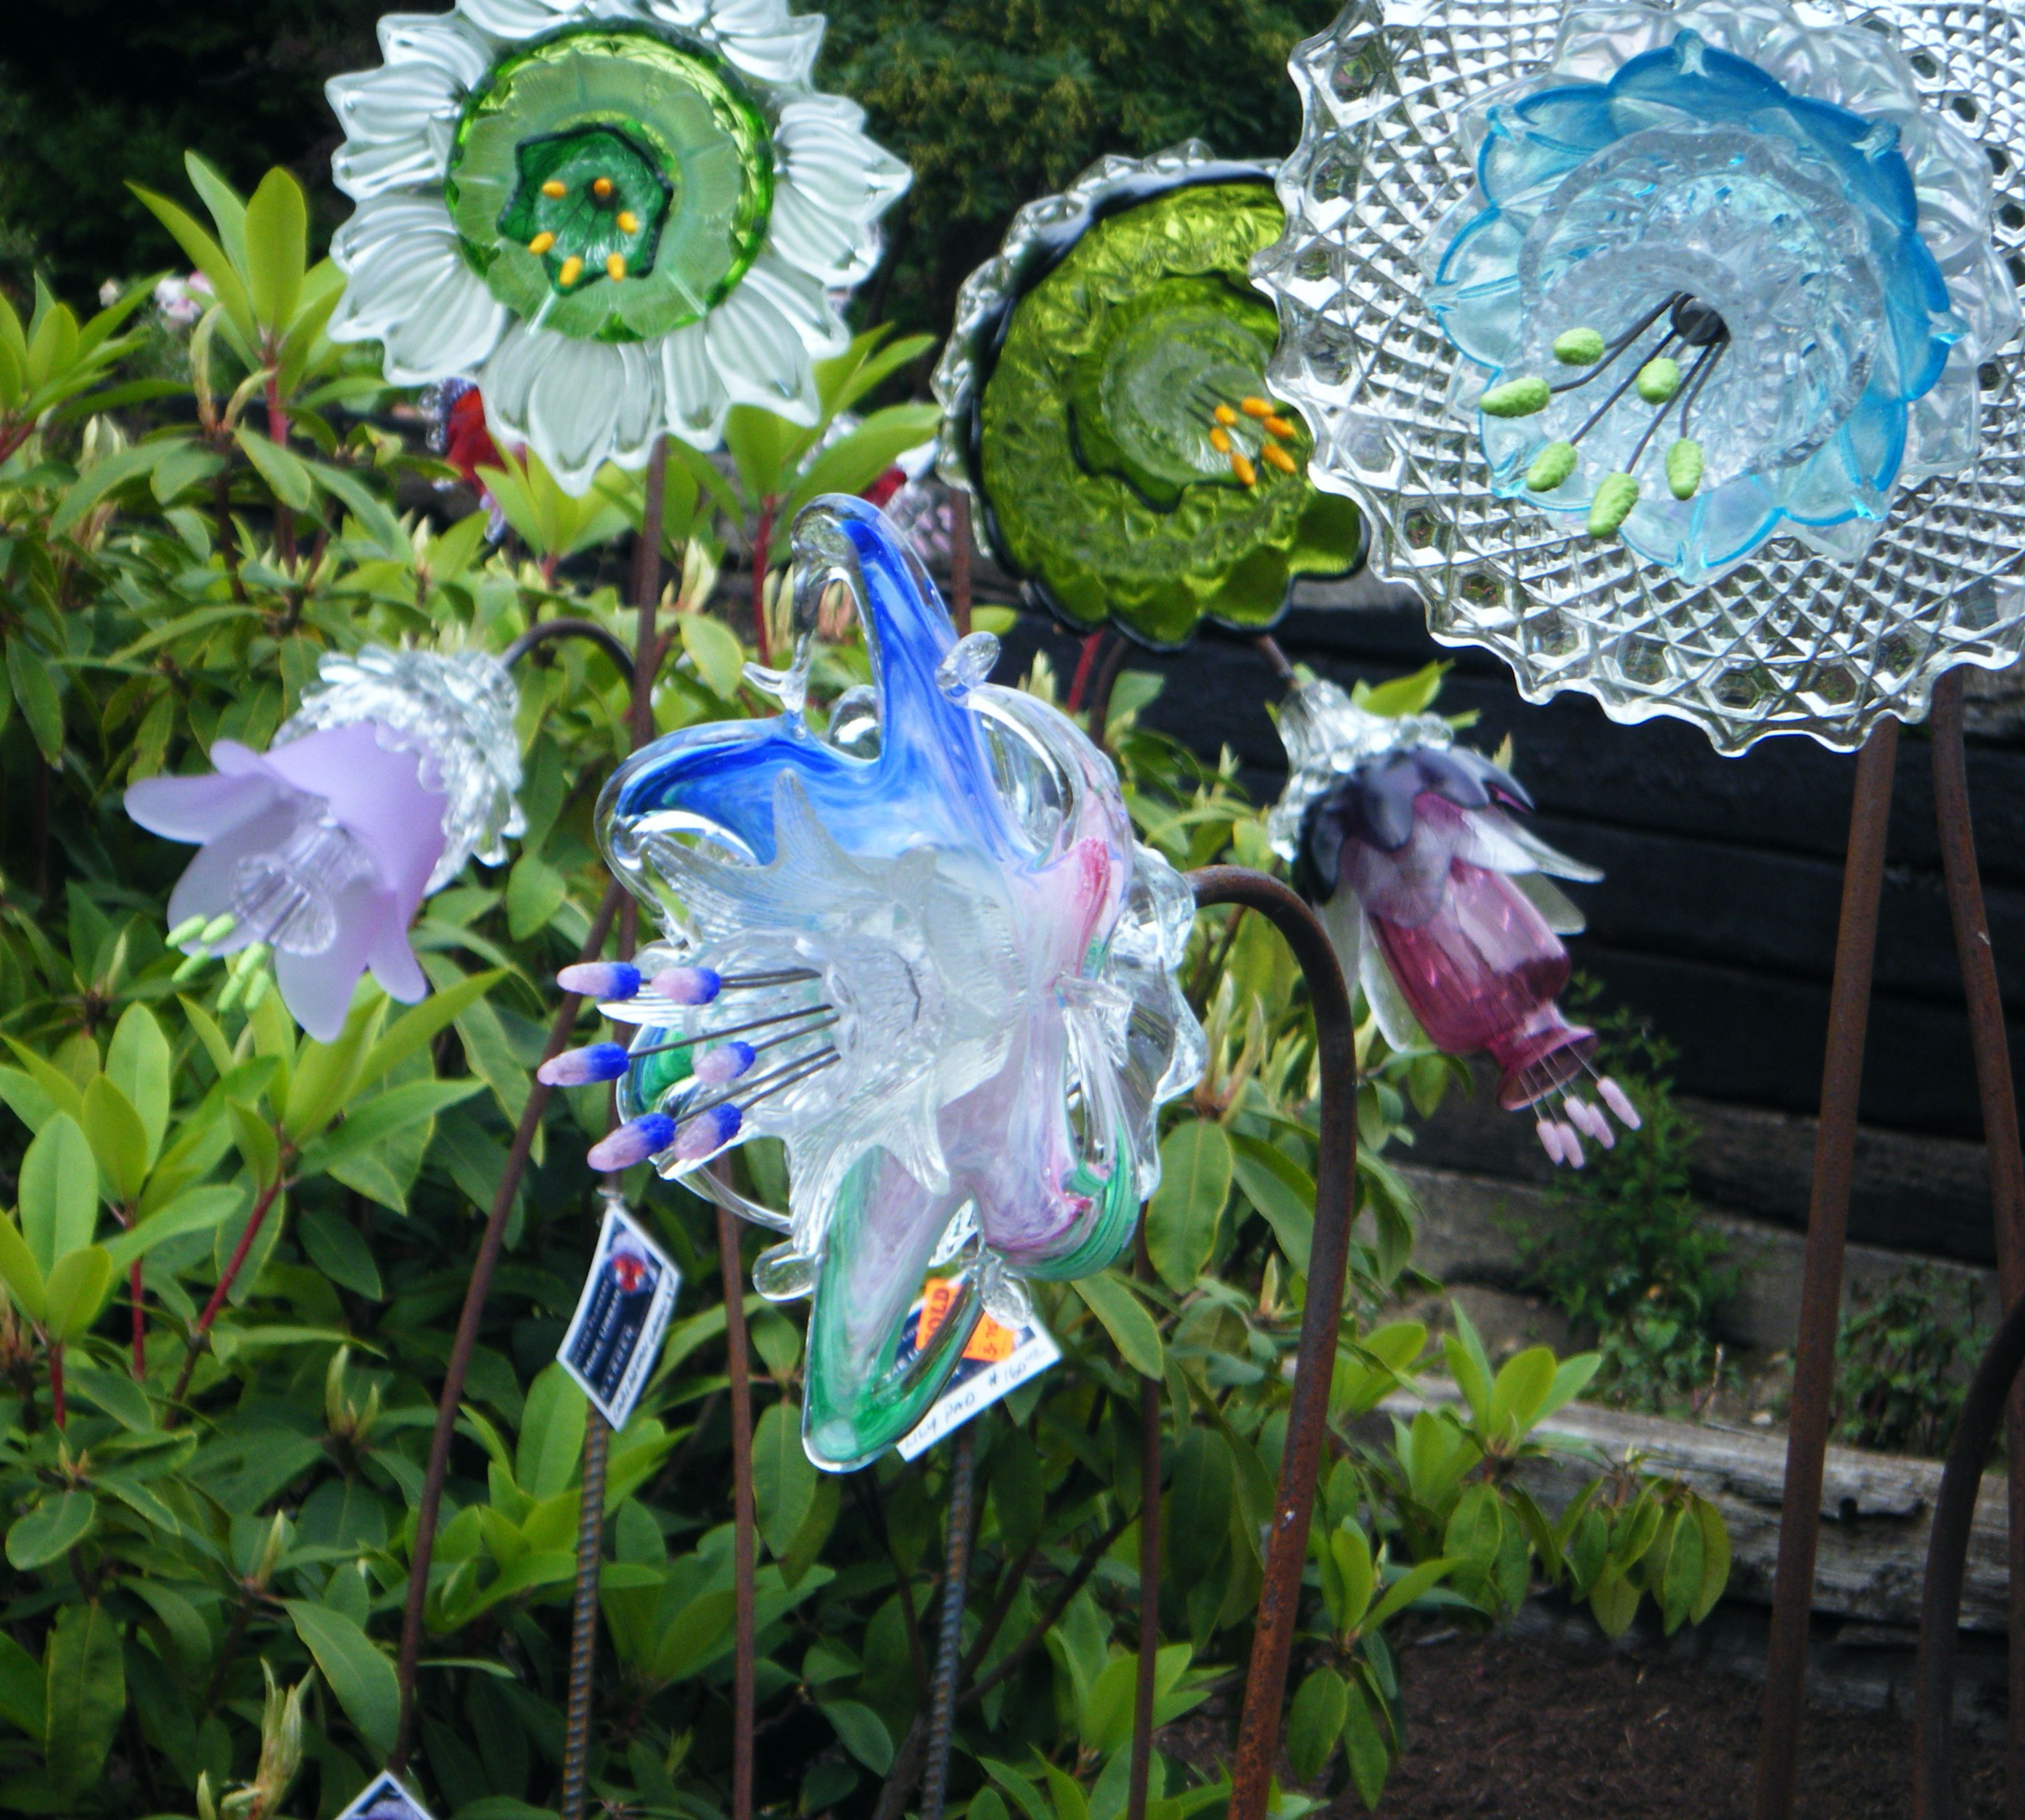 Glass flowers by washington artist mike urban garden art for Recycled glass garden ornaments